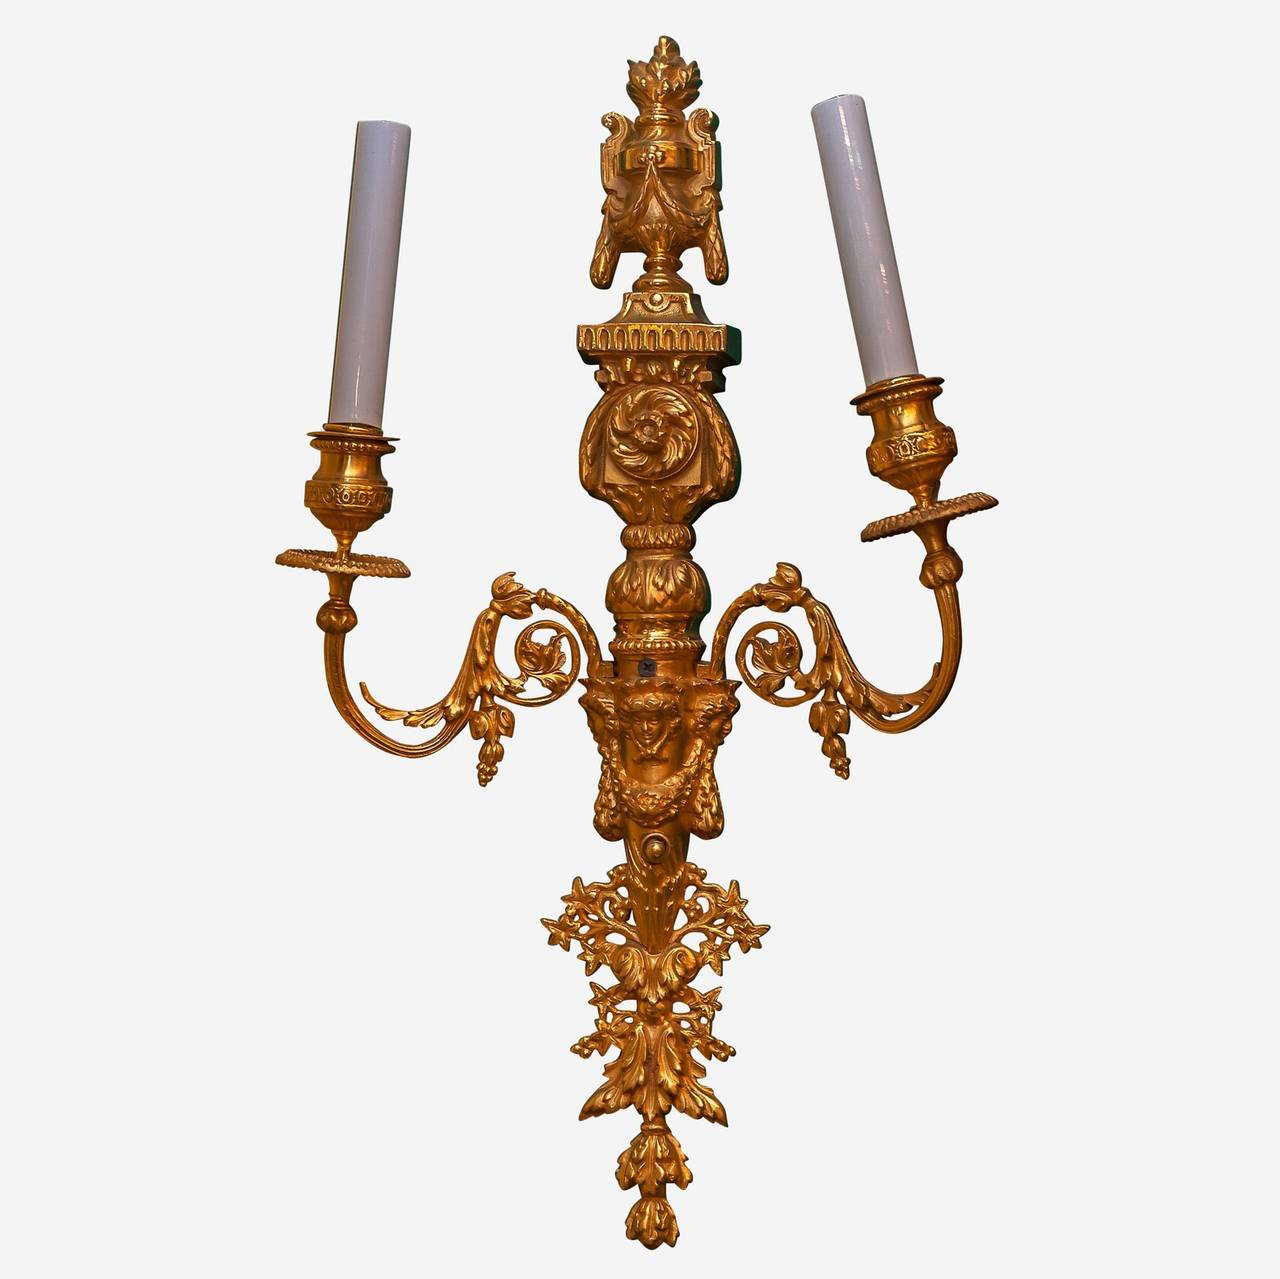 French Exquisite Pair of Gilt Bronze Louis XVI Style Two-Arm Wall Light Sconces For Sale